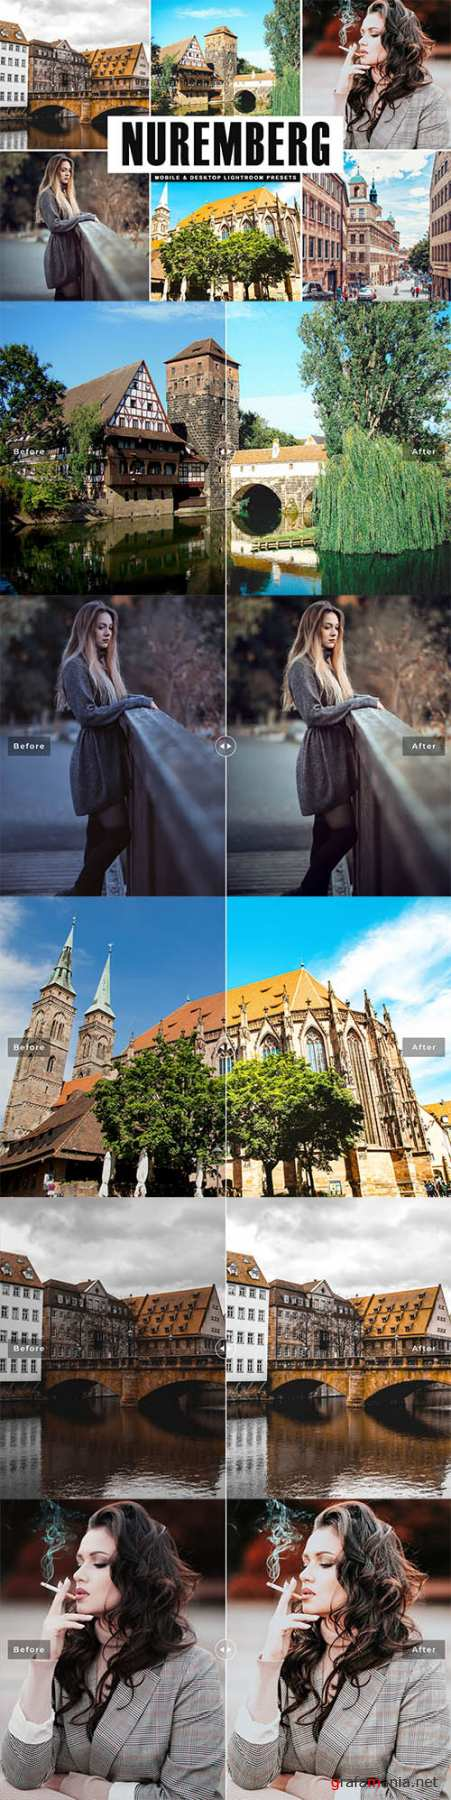 Nuremberg Mobile & Desktop Lightroom Presets